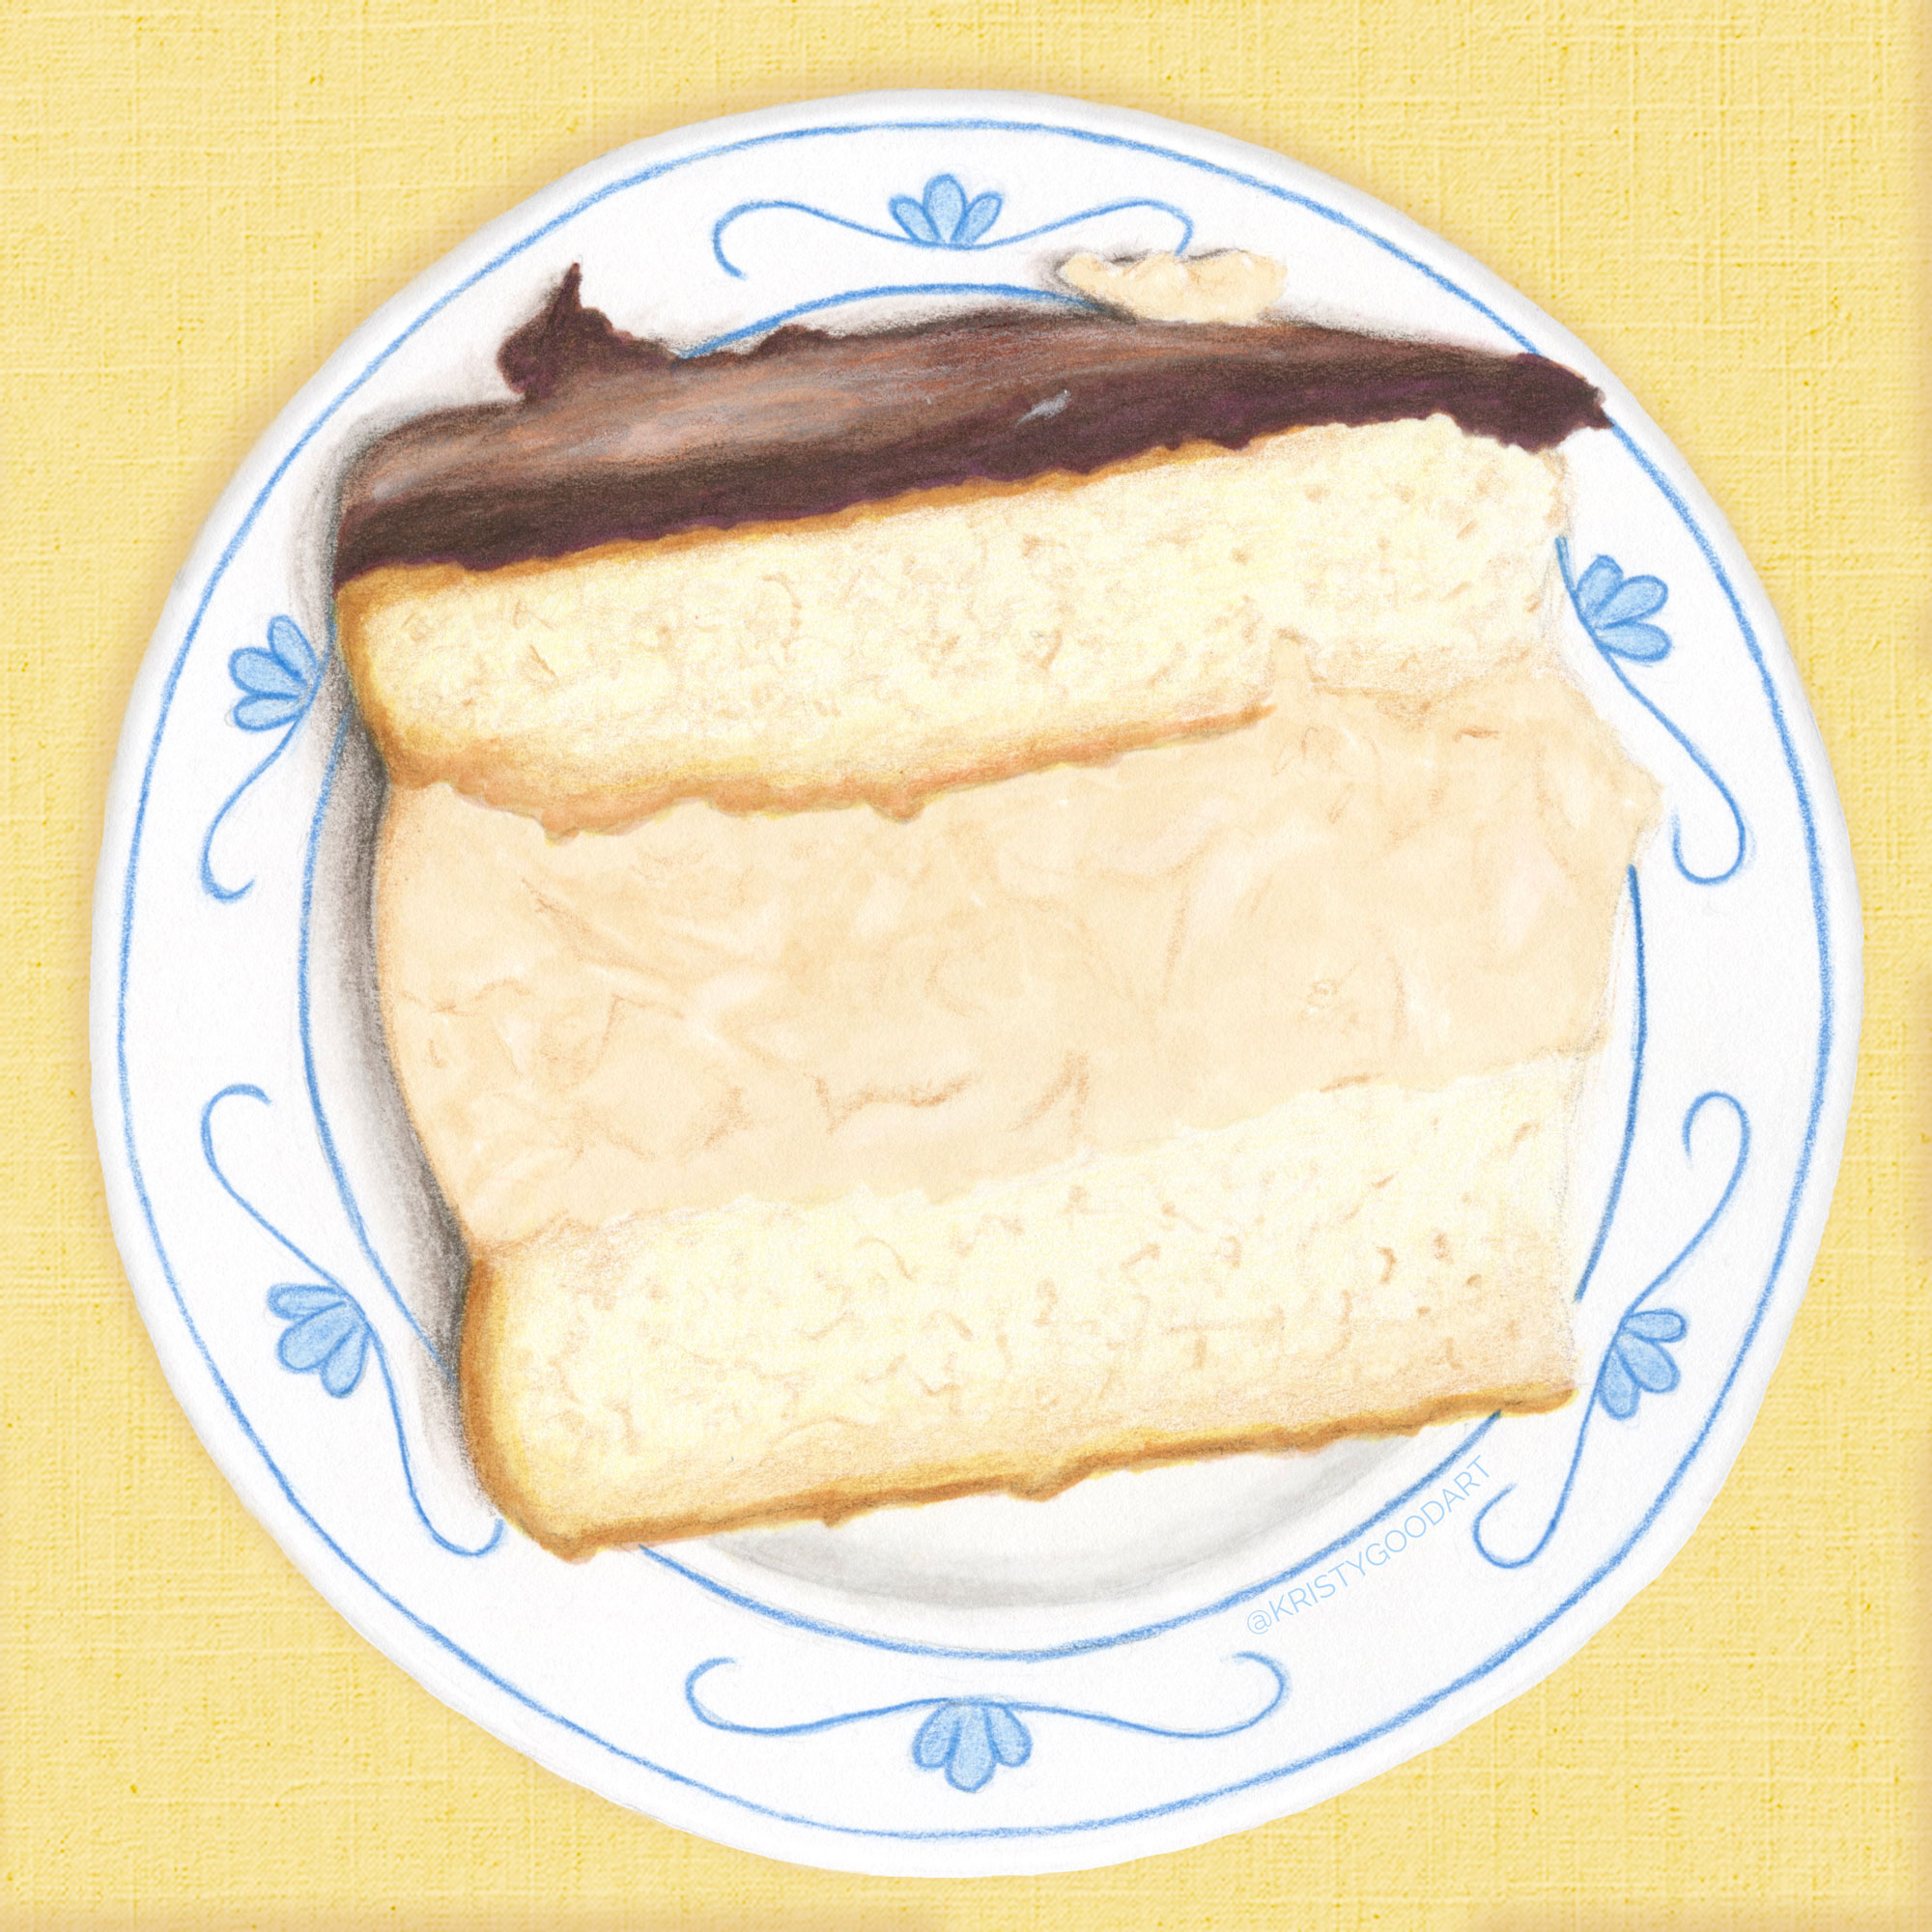 boston cream pie illustration